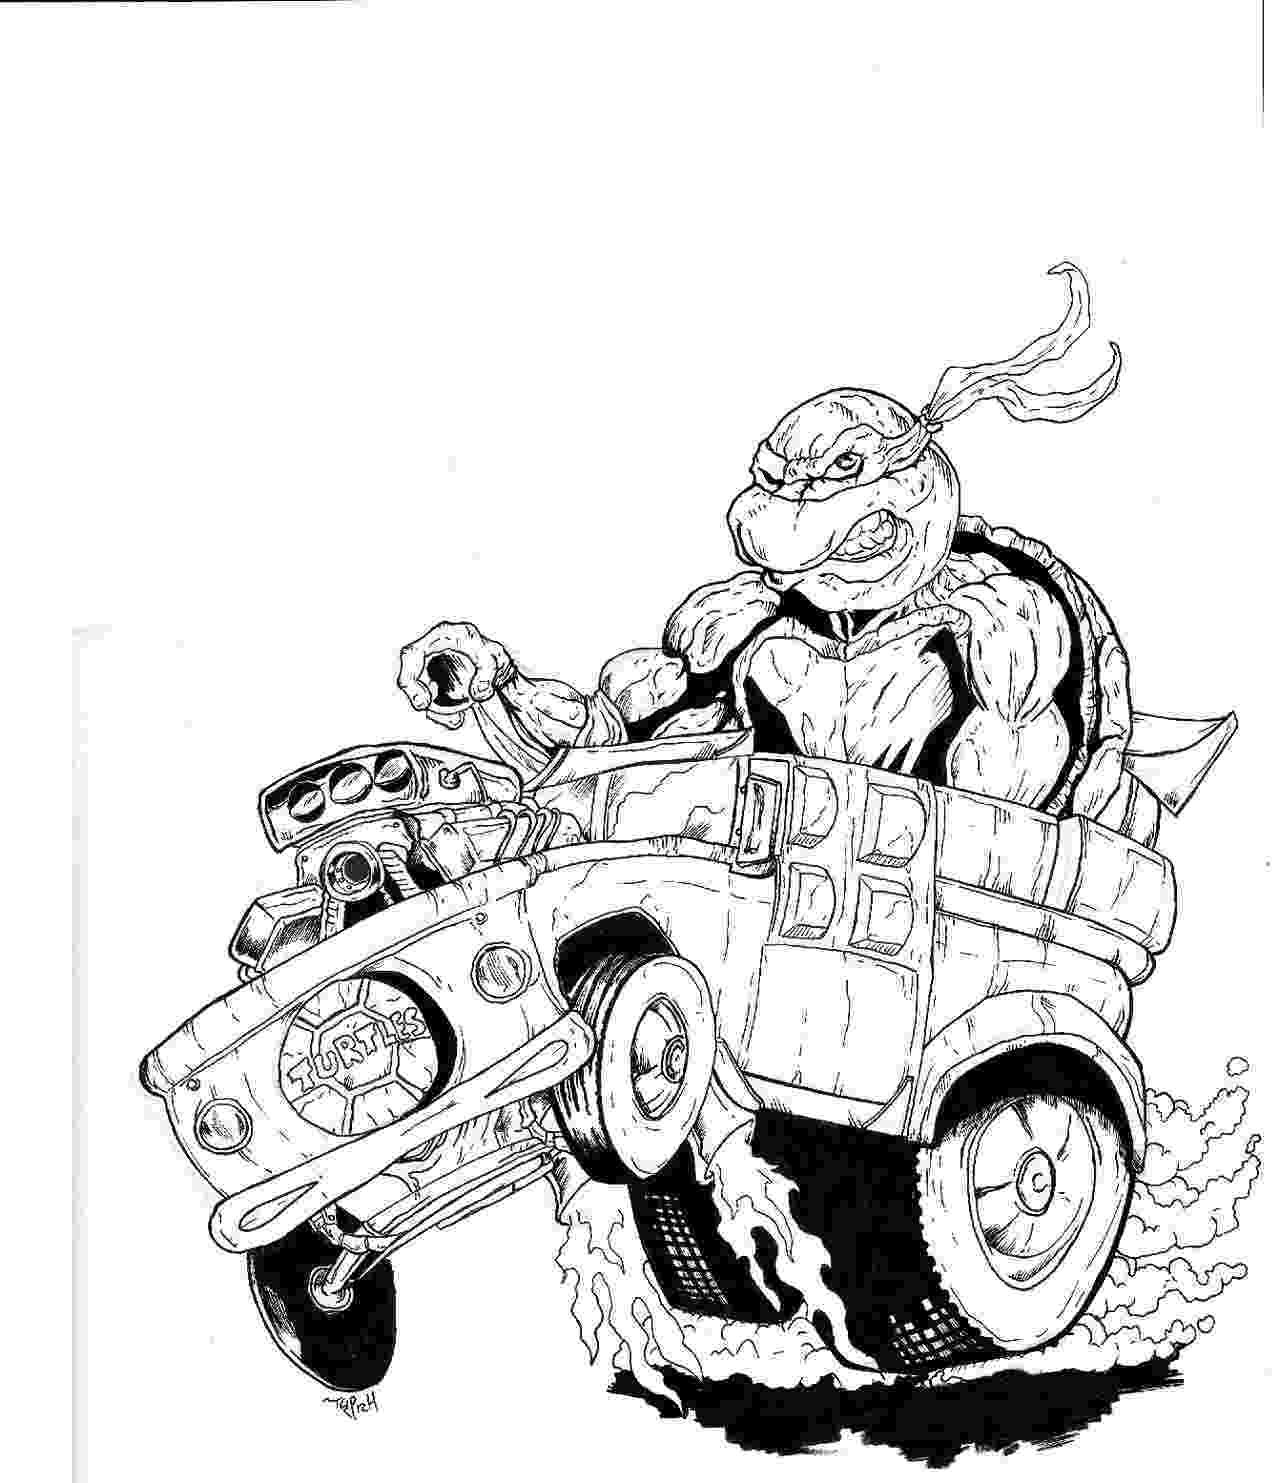 coloring pages hot rod cars rat fink hot rod coloring rat fink pinterest rat hot cars coloring pages rod